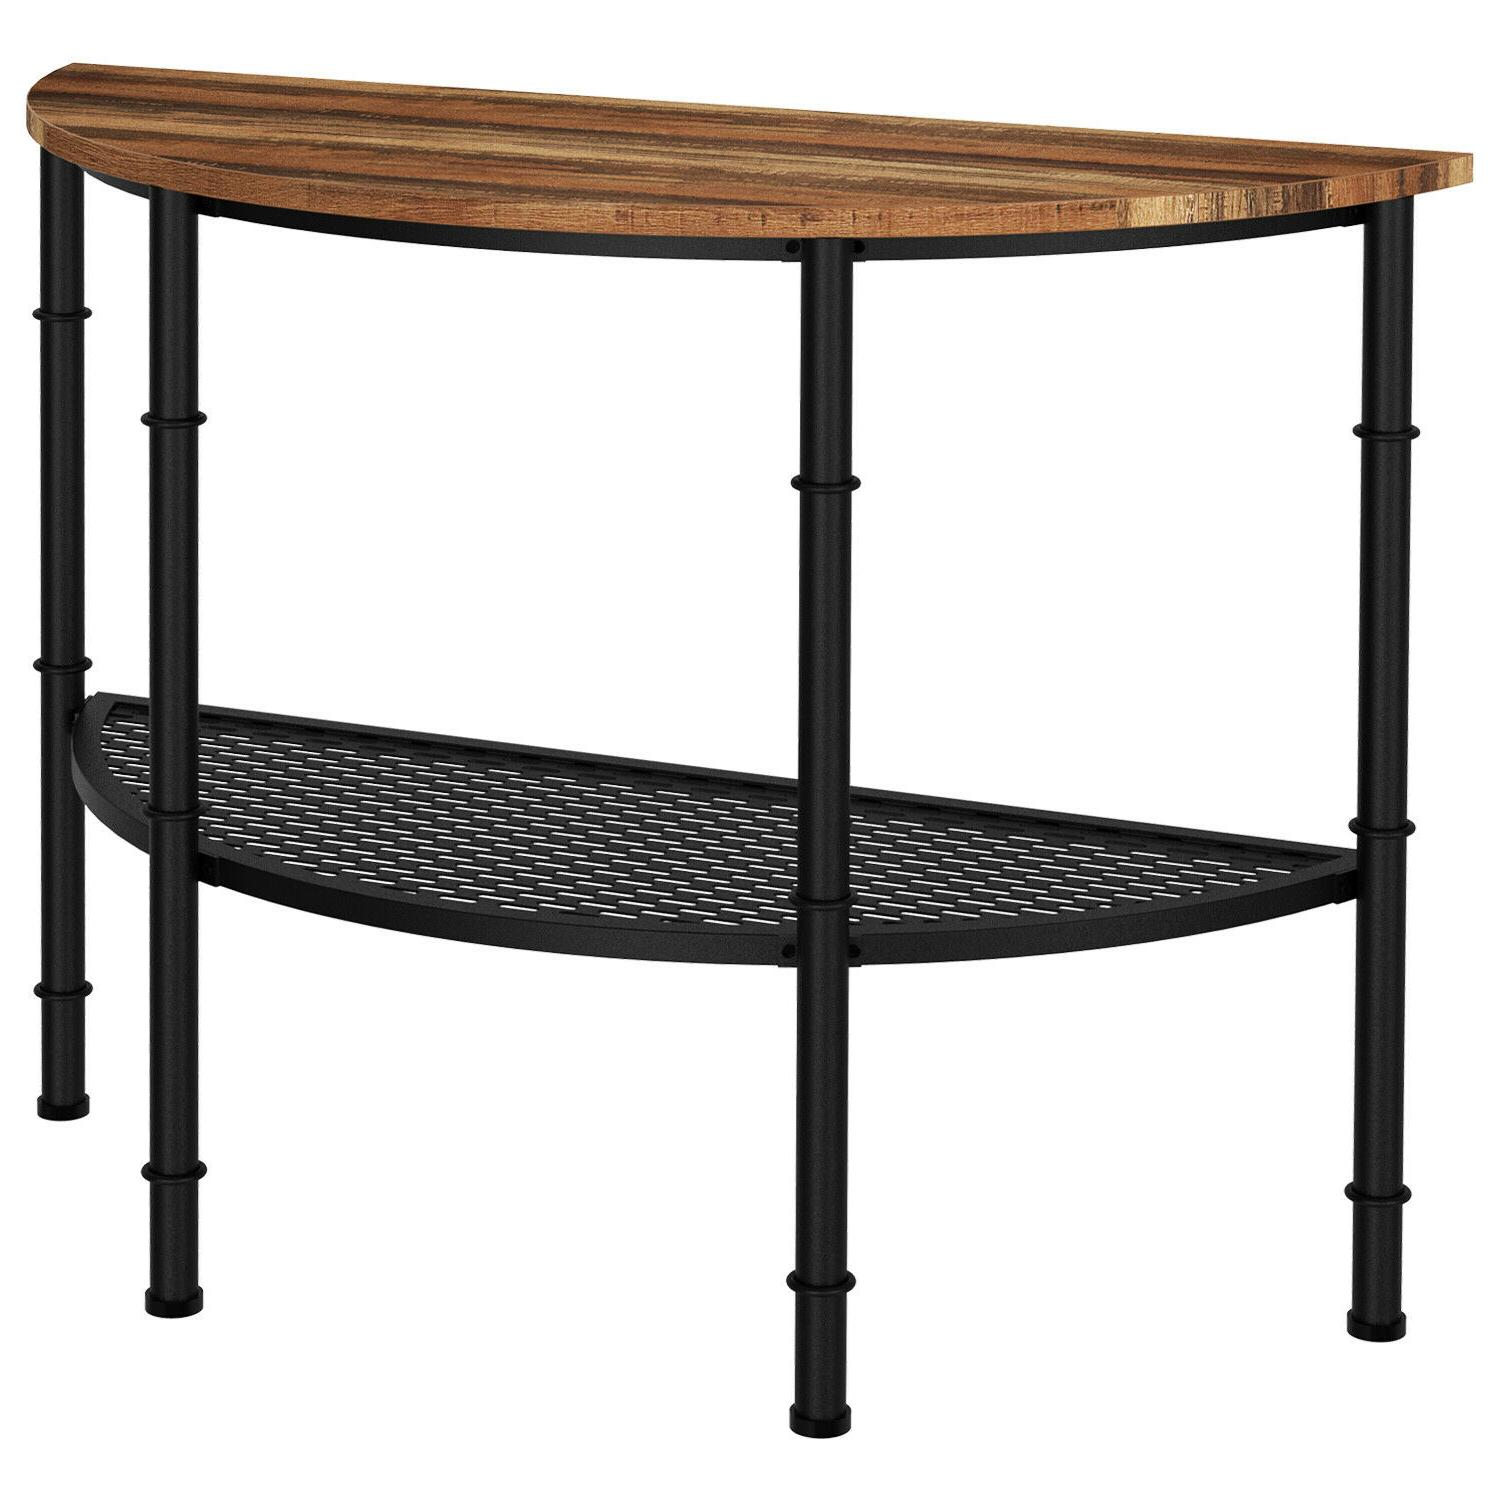 IRONCK Table Industrial Entry Table Shelf,